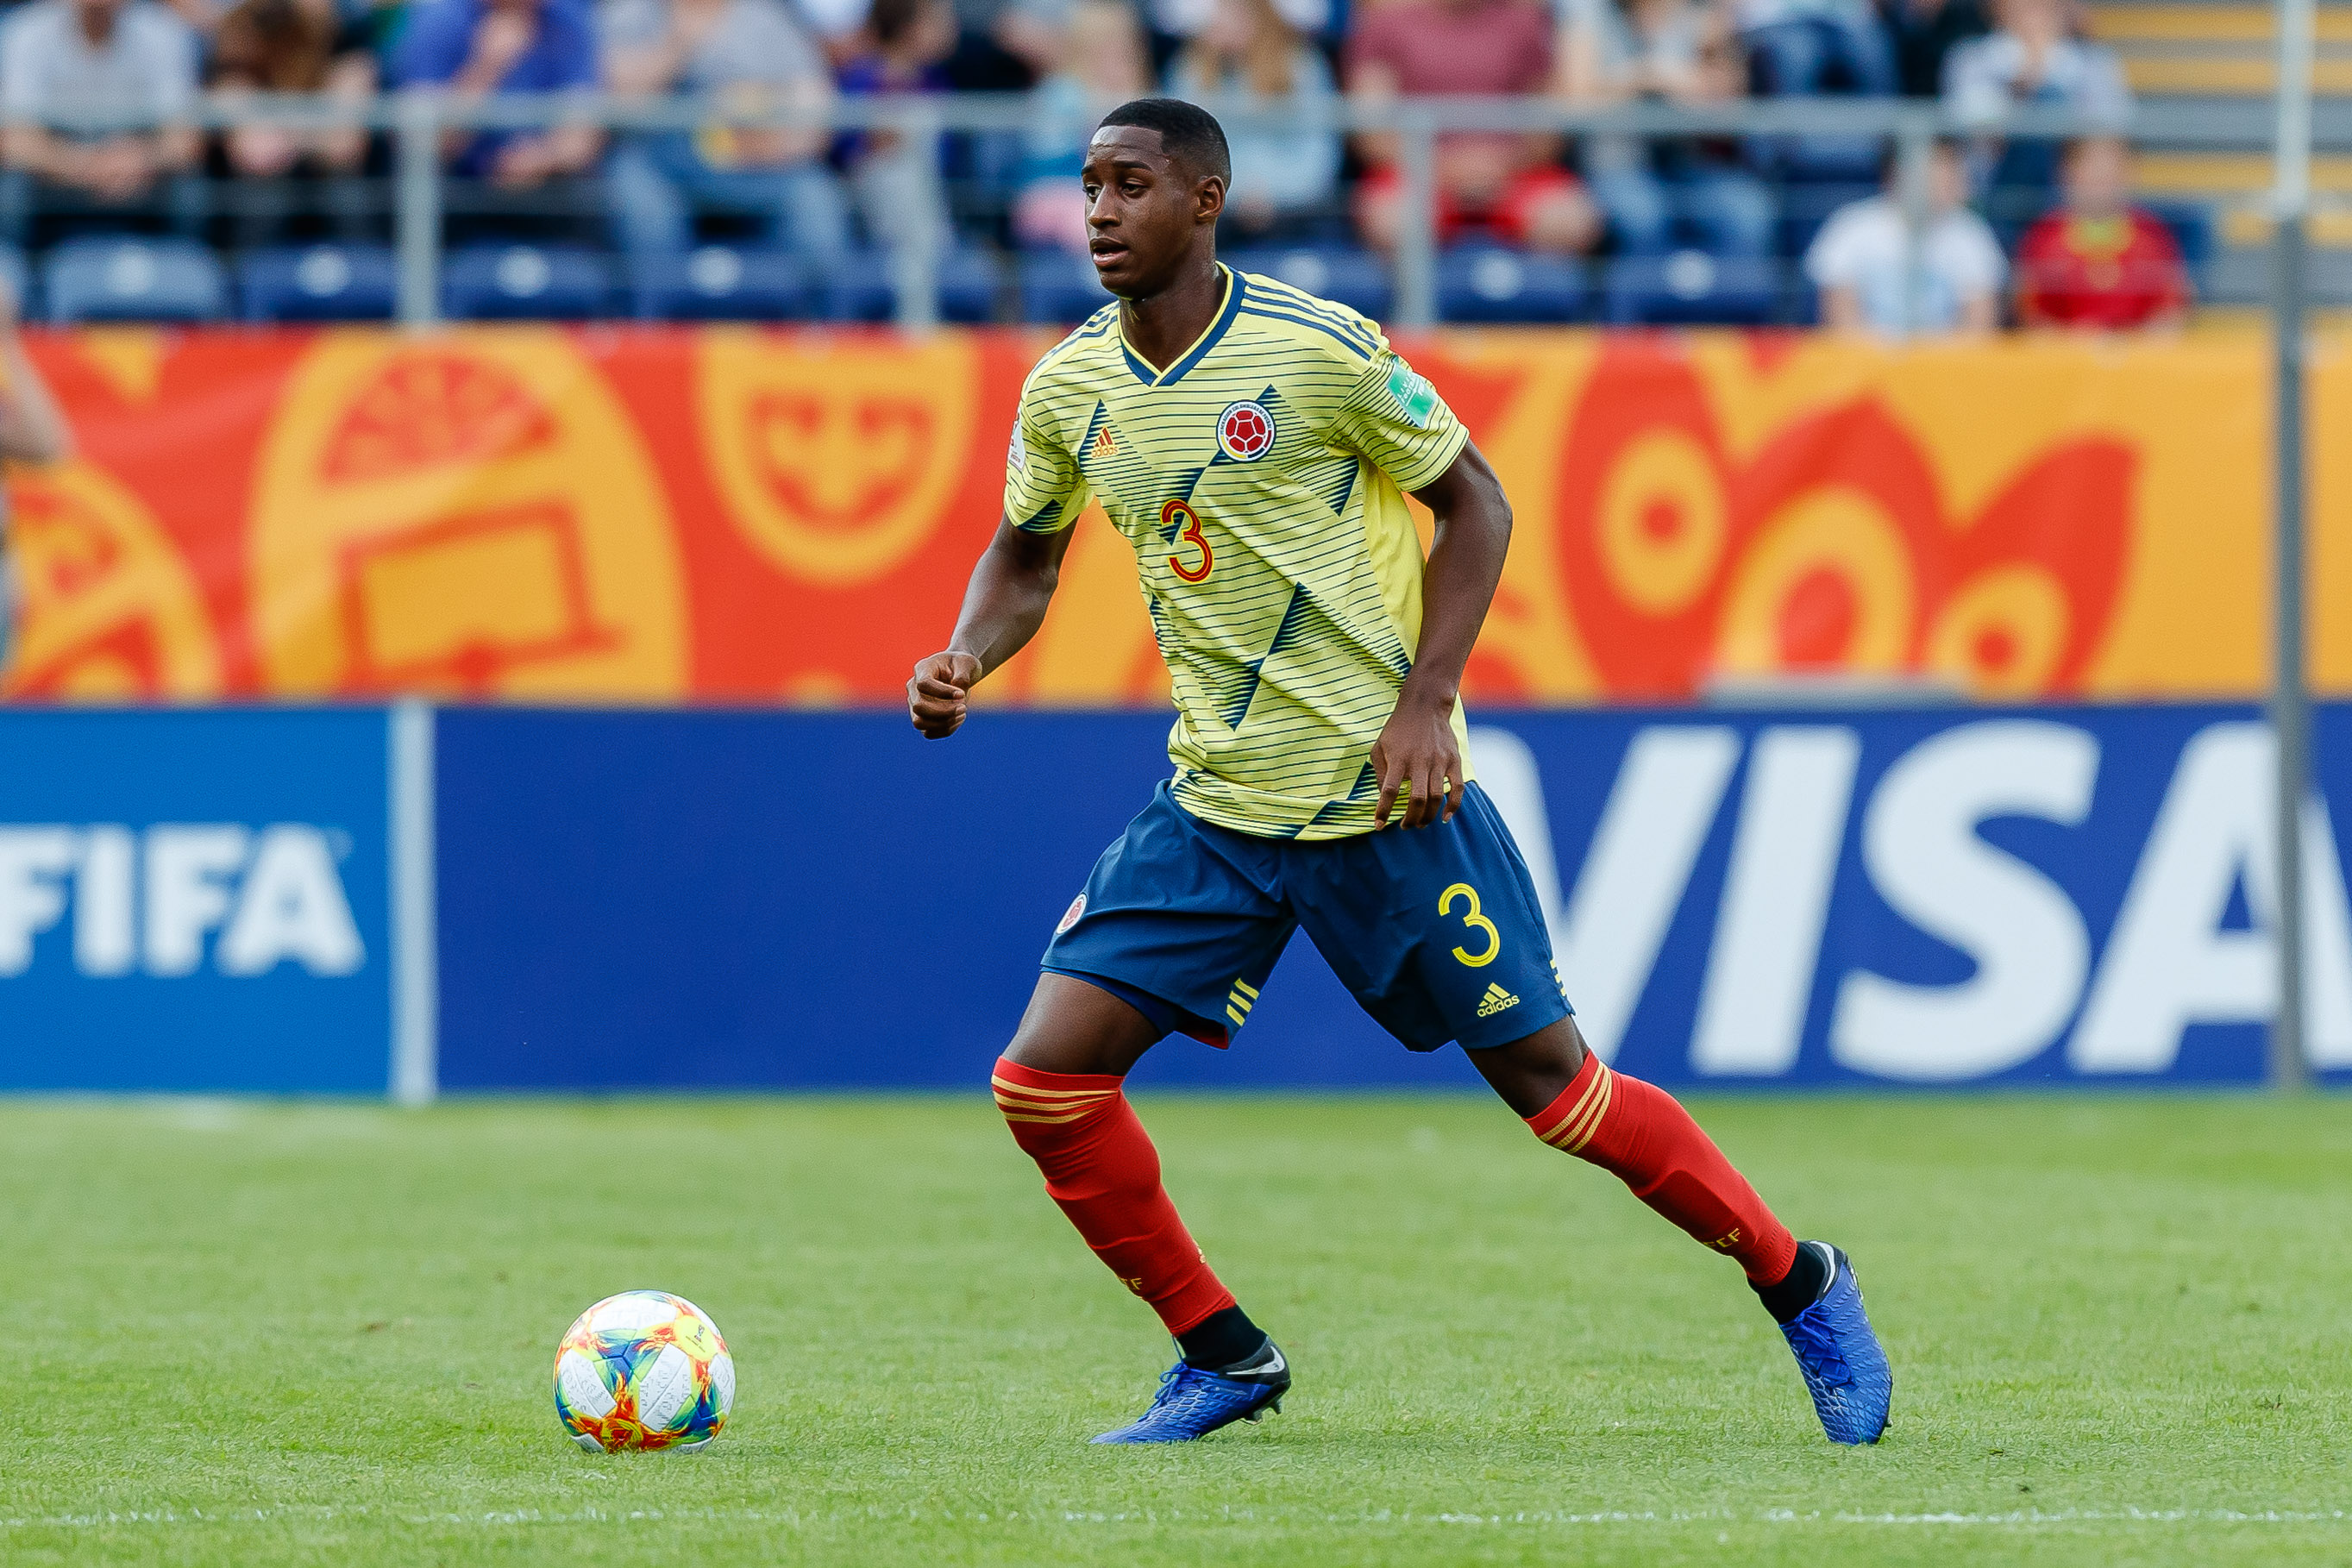 Senegal v Colombia: Group A - 2019 FIFA U-20 World Cup